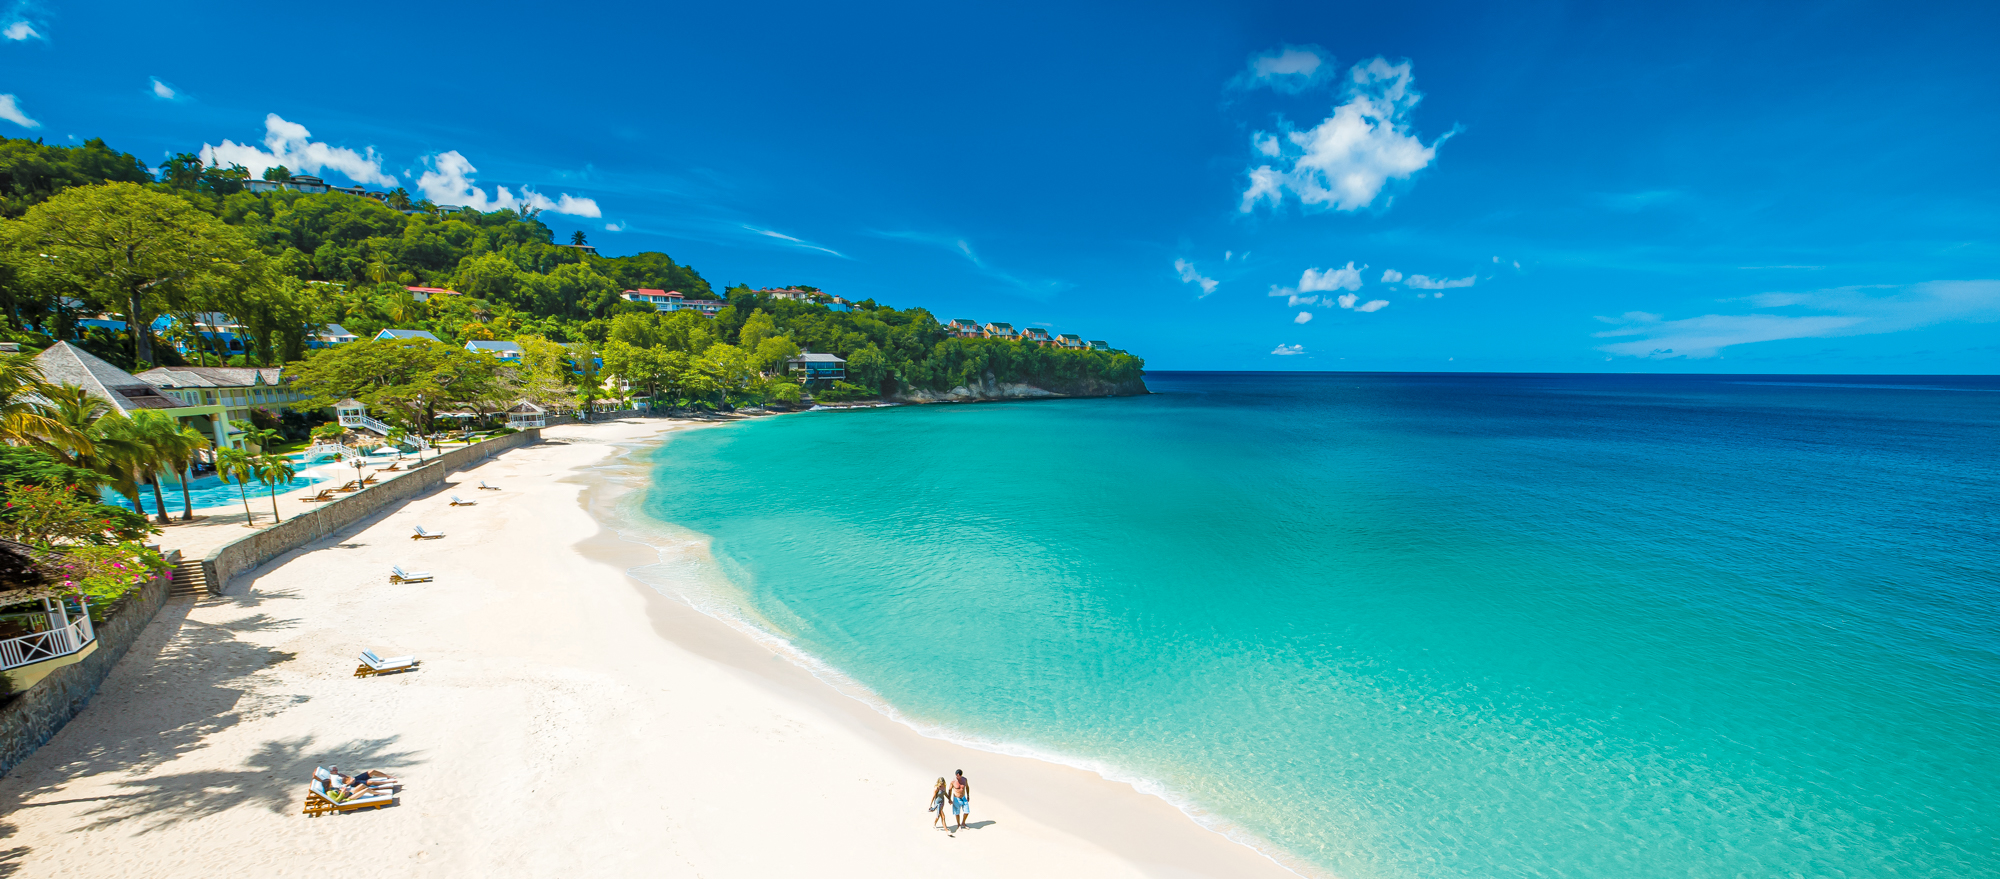 White sand beach and turquoise Caribbean waters